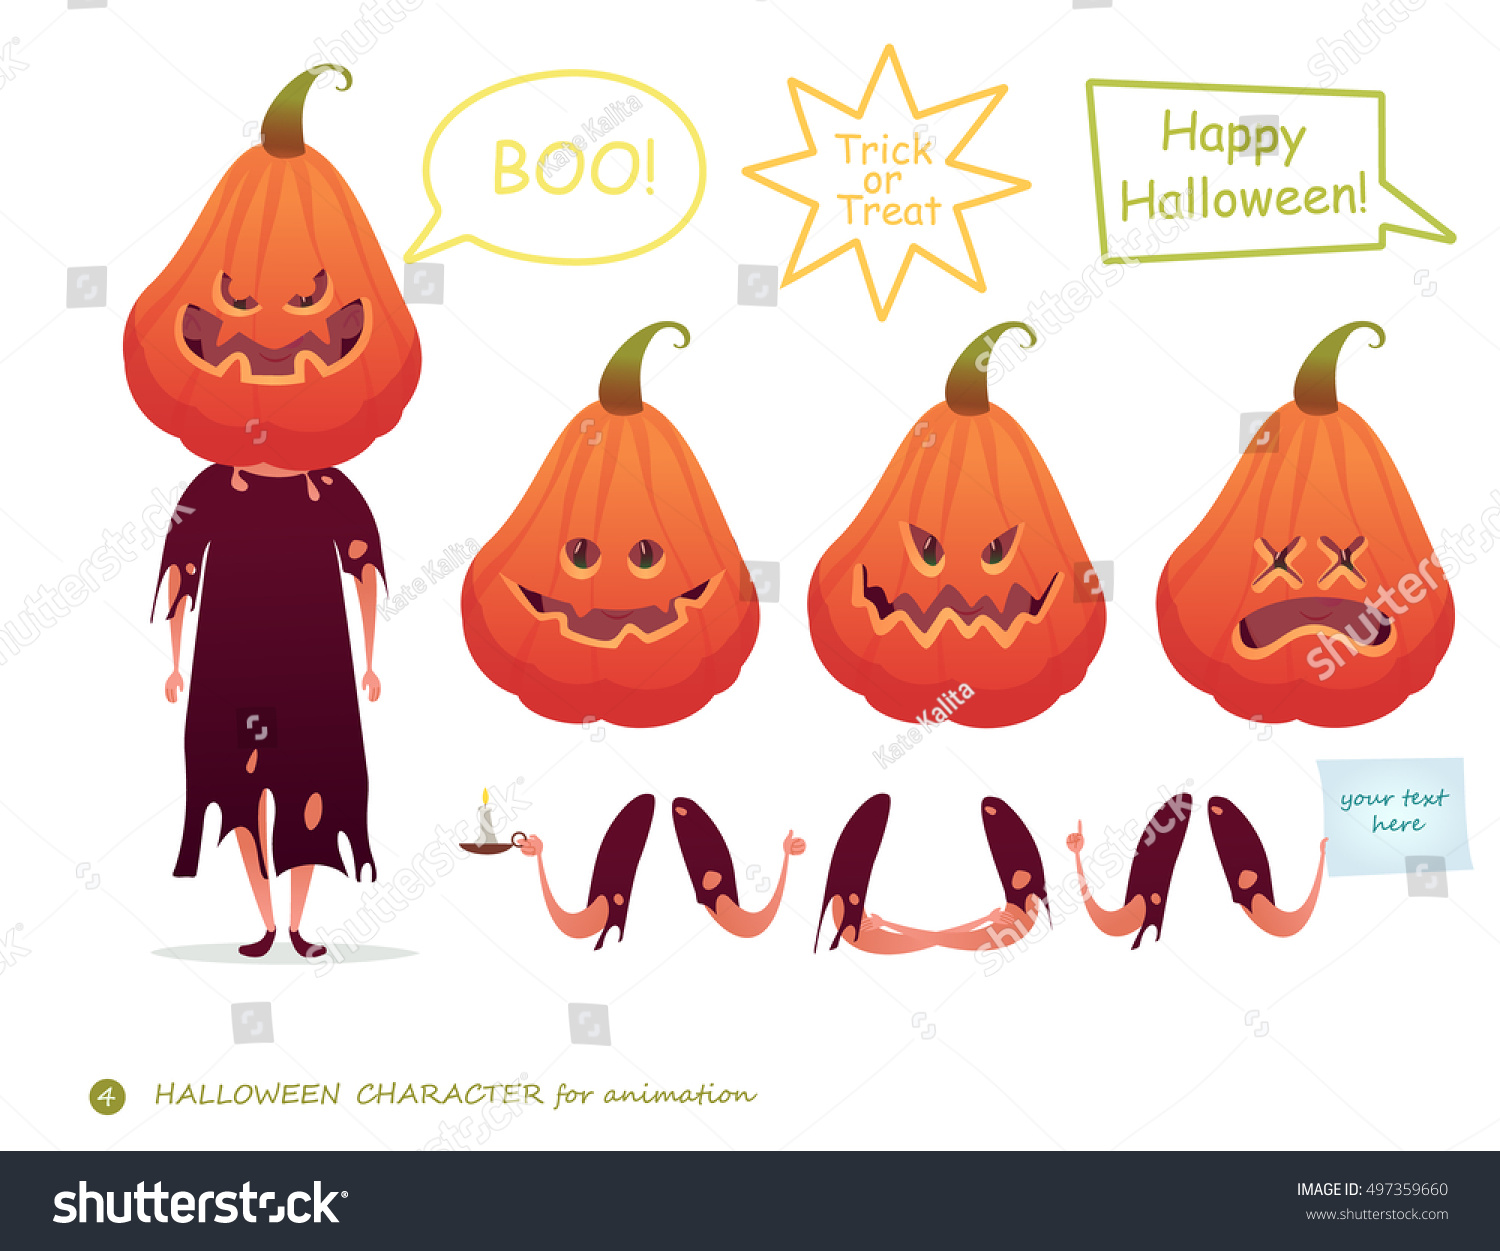 Vector Illustration Pumpkin Emotion Faces Emoji Stock Vector ...